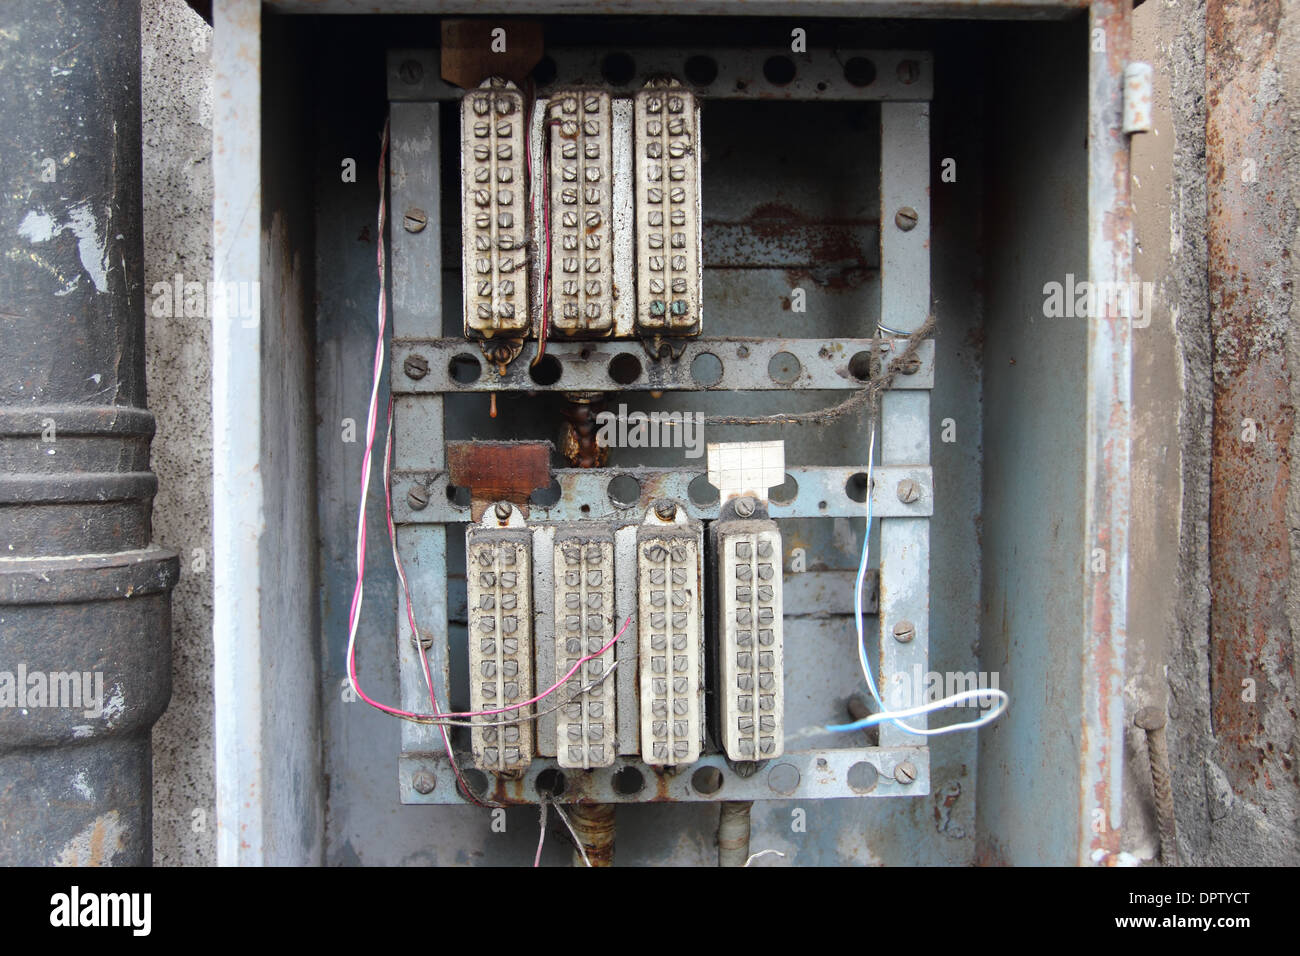 Relays Stock Photos Images Alamy Relay Electric Virginia Beach Vintage Control Power Circuits In Old Electrical Panel Image